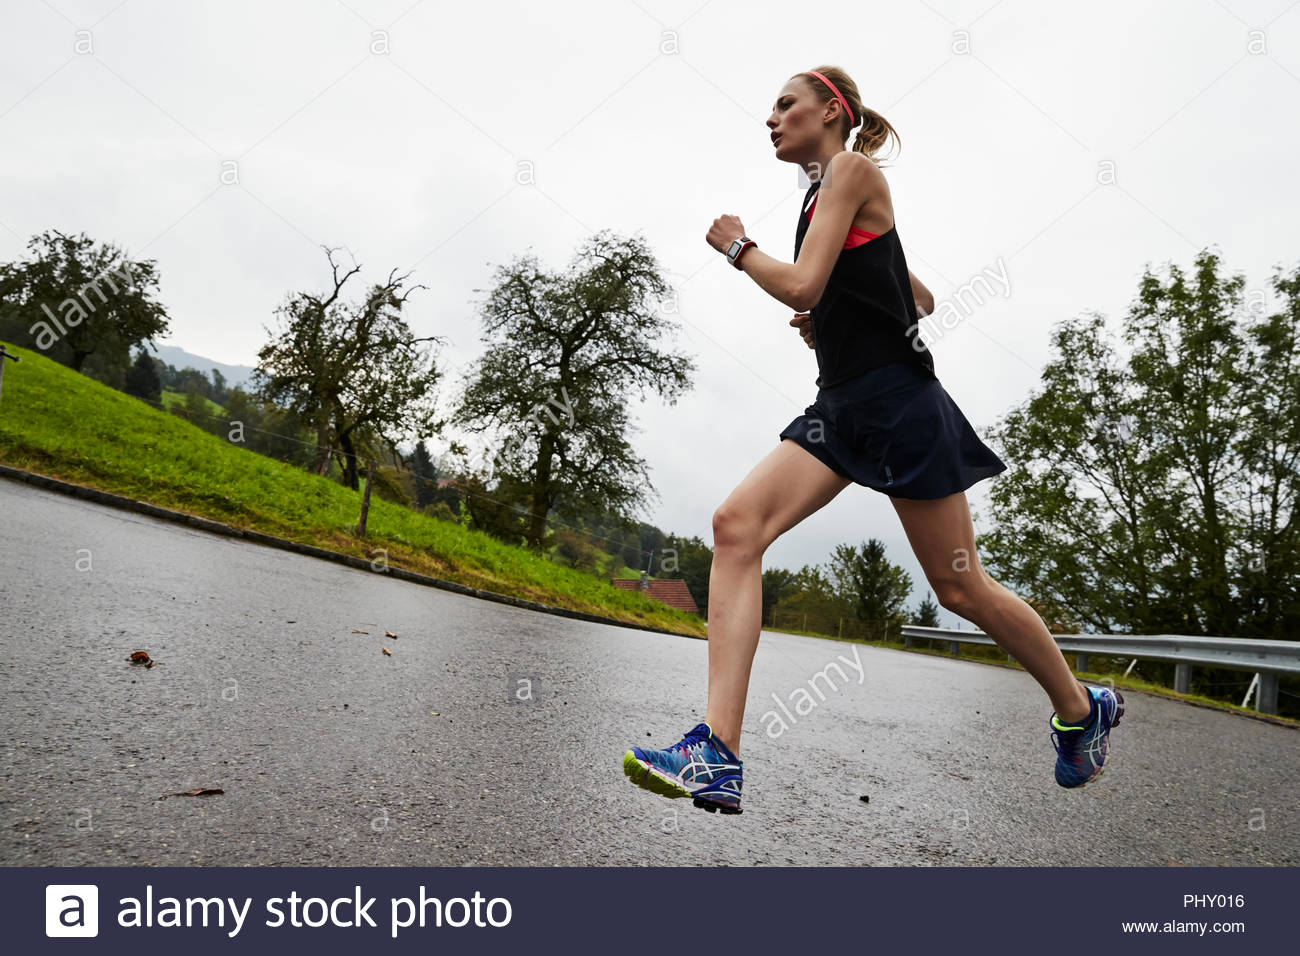 Young man running on athletics track - Stock Image